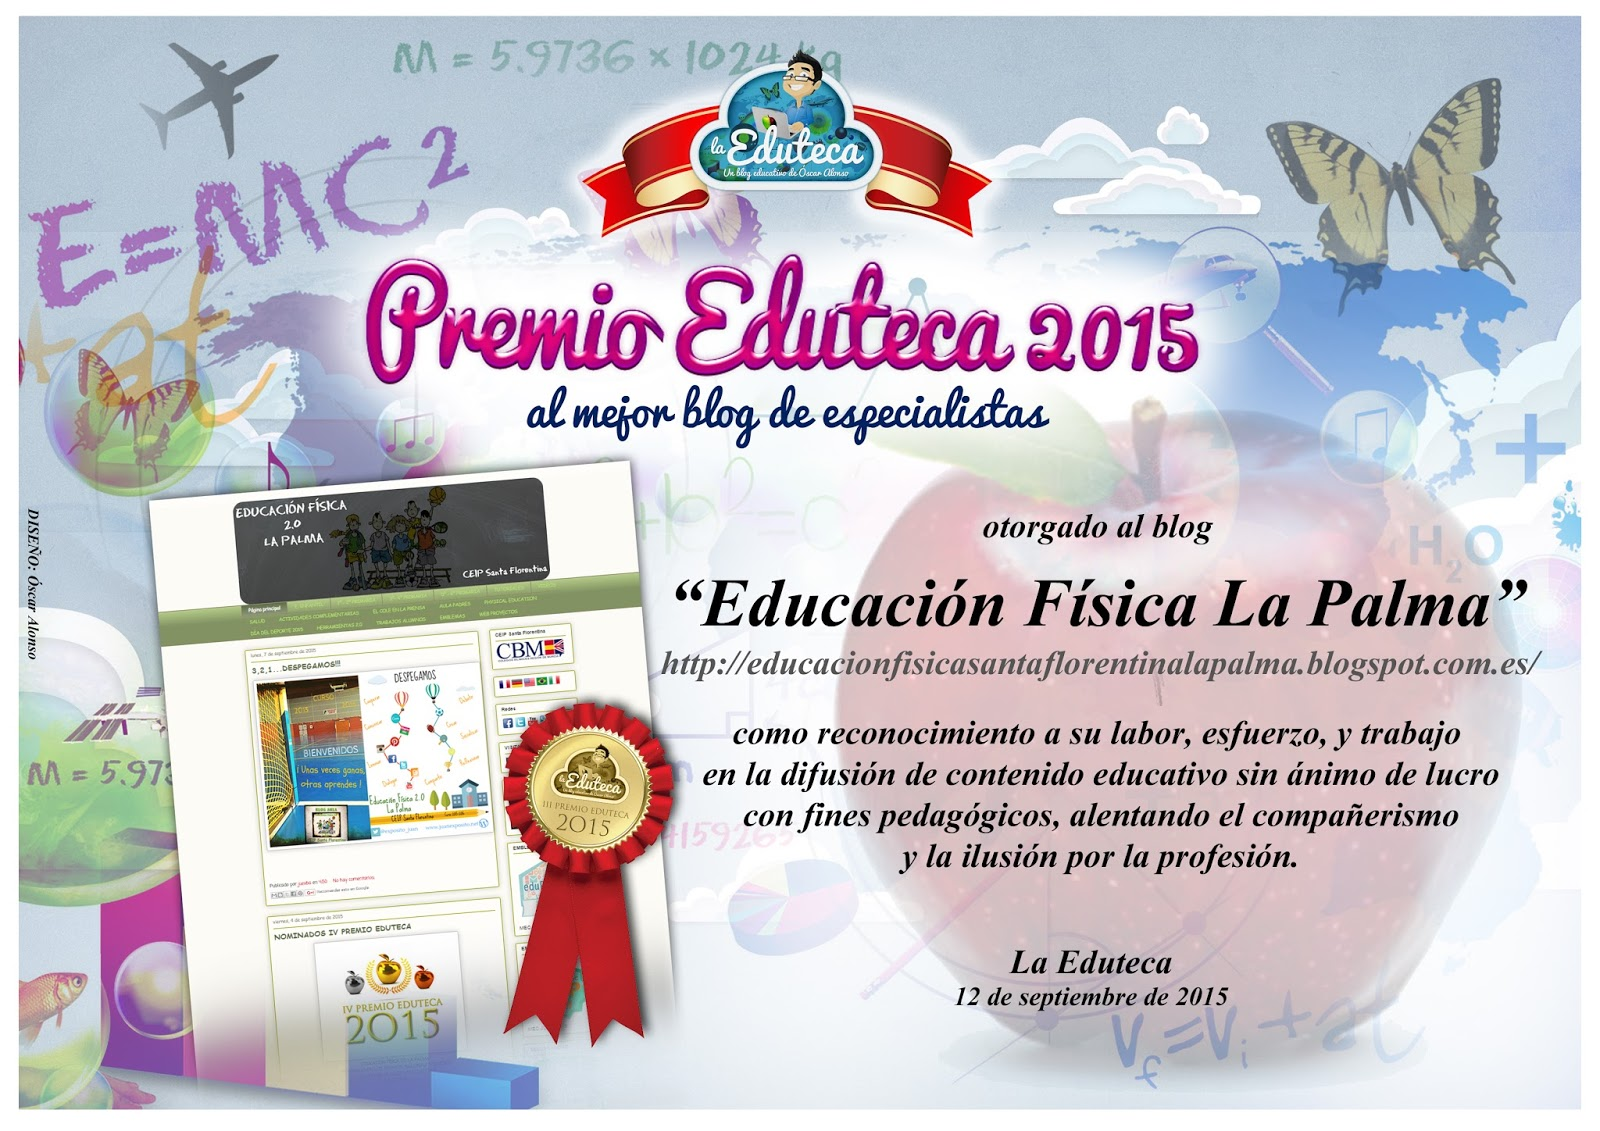 Premio Eduteca 2015 al mejor blog de especialistas